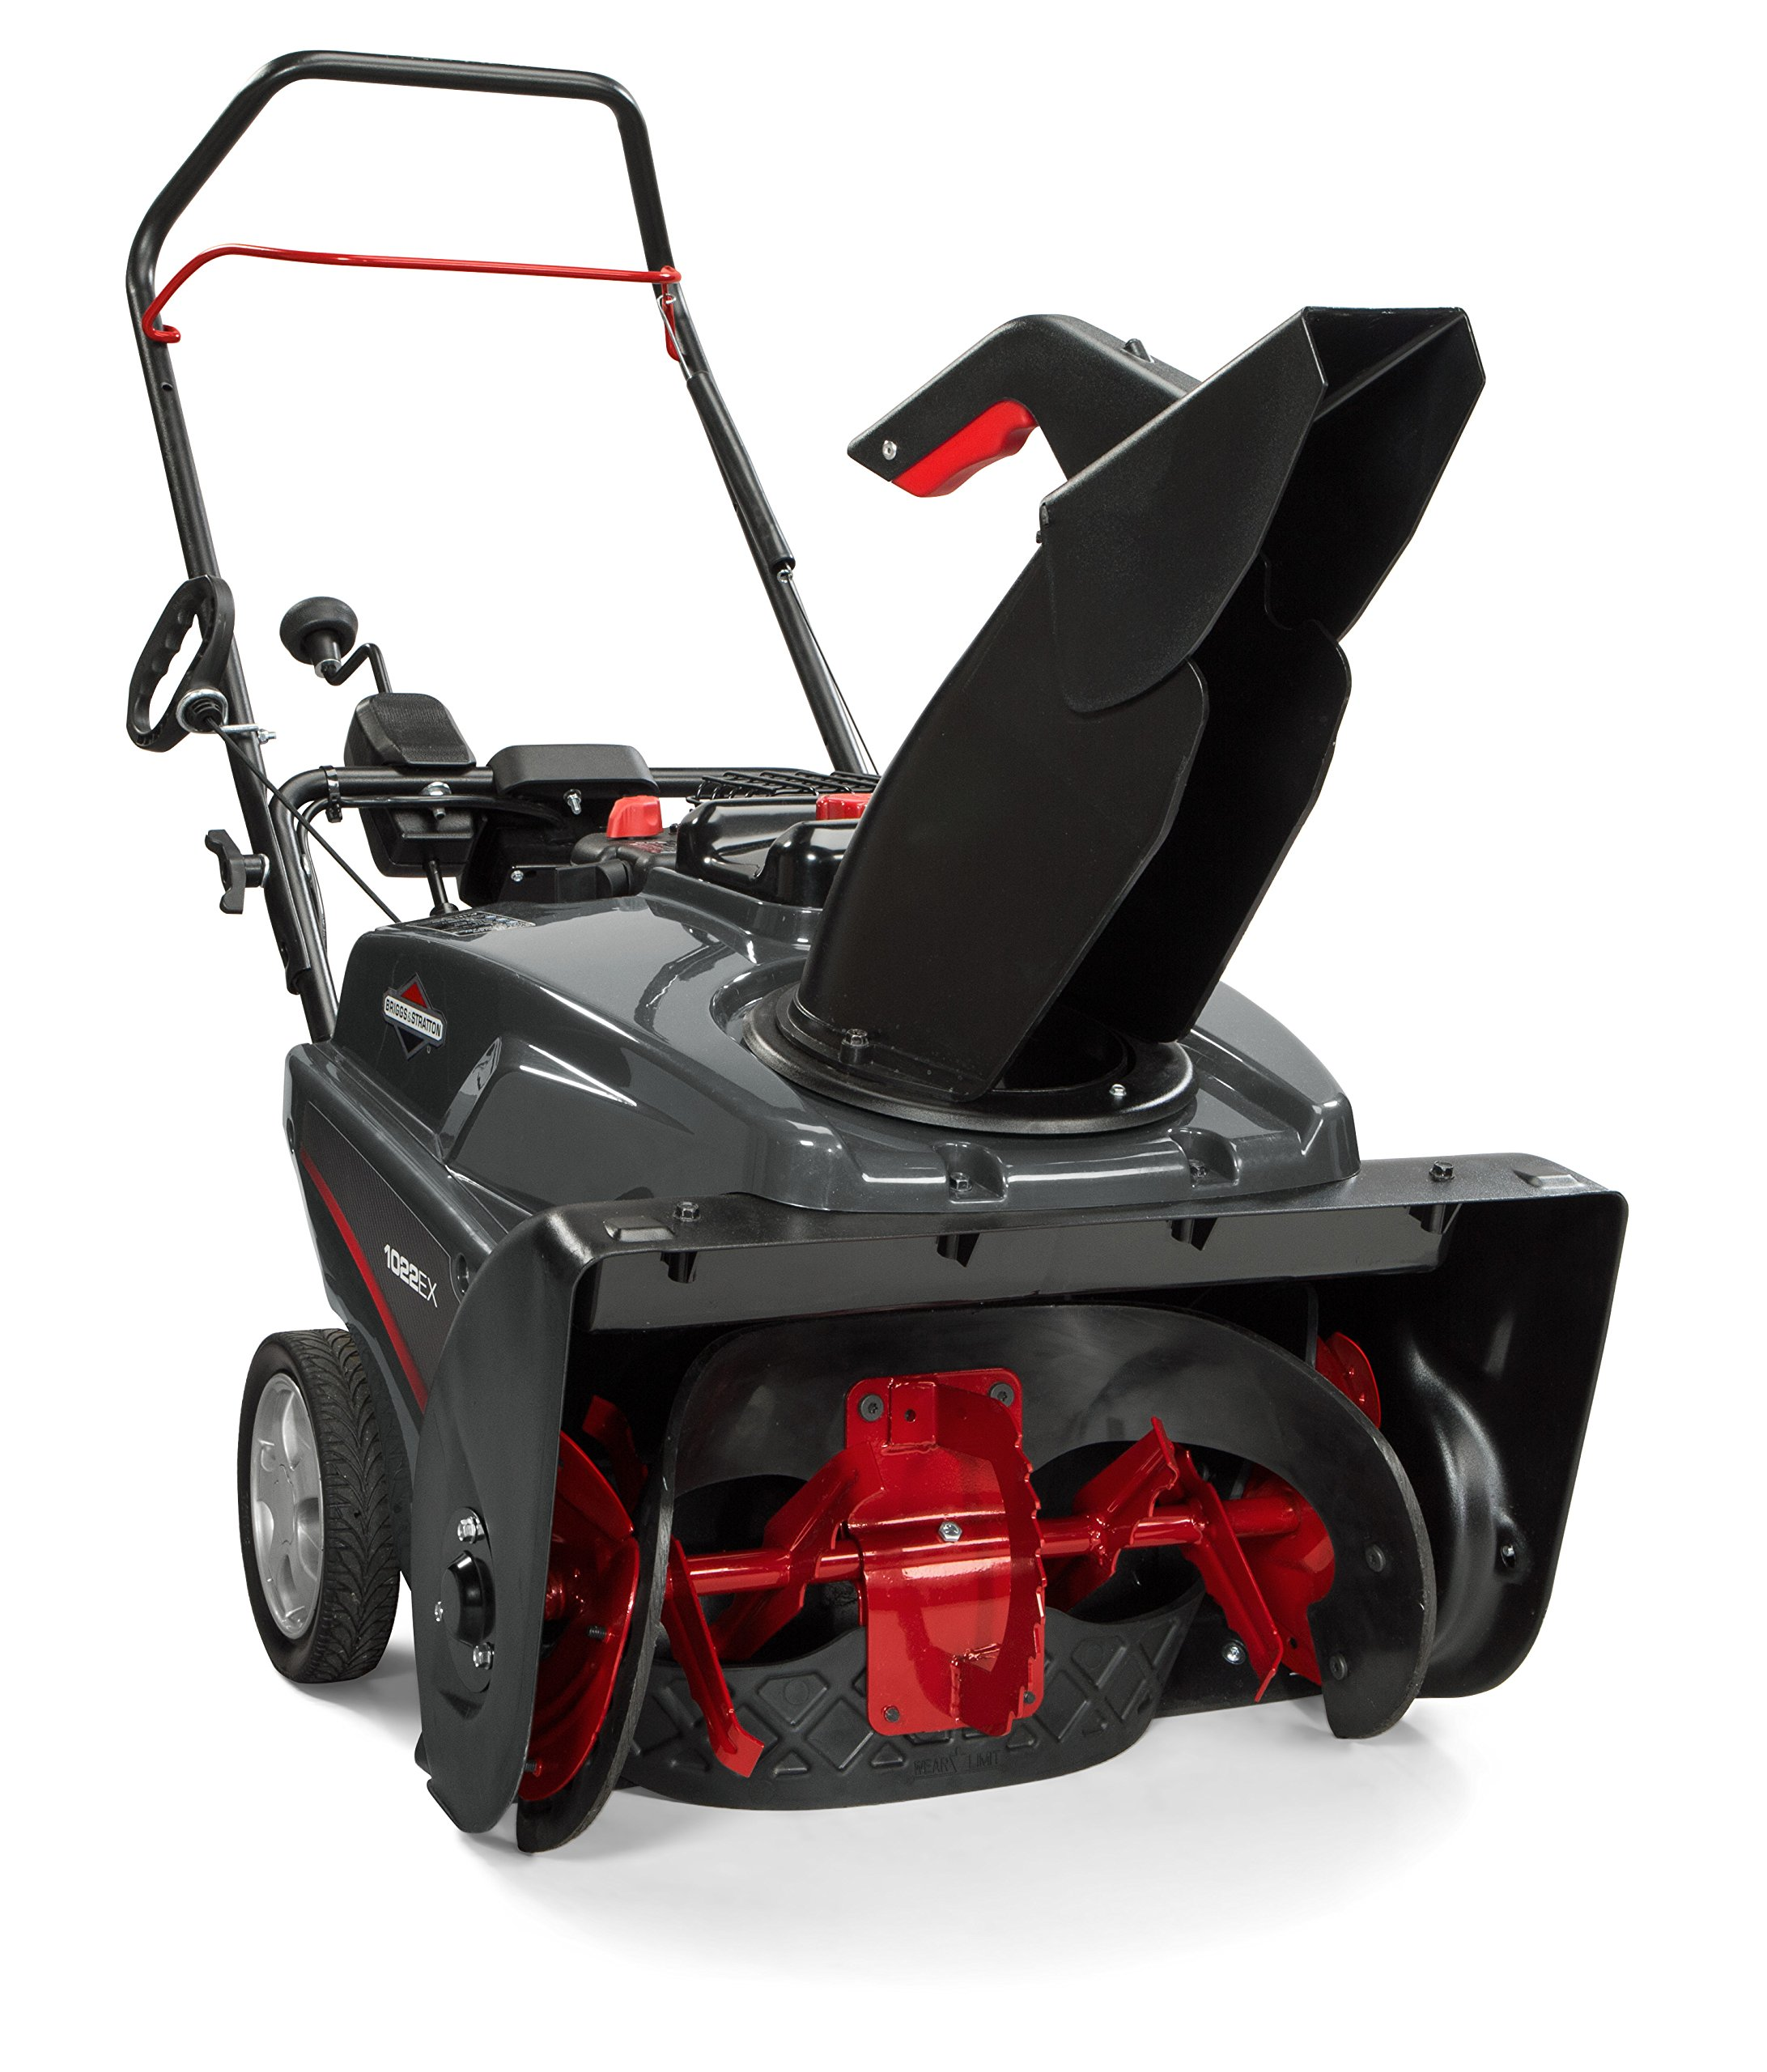 Briggs & Stratton 1696847 Single Stage Snowthrower Snow Thrower, 208cc by Briggs & Stratton